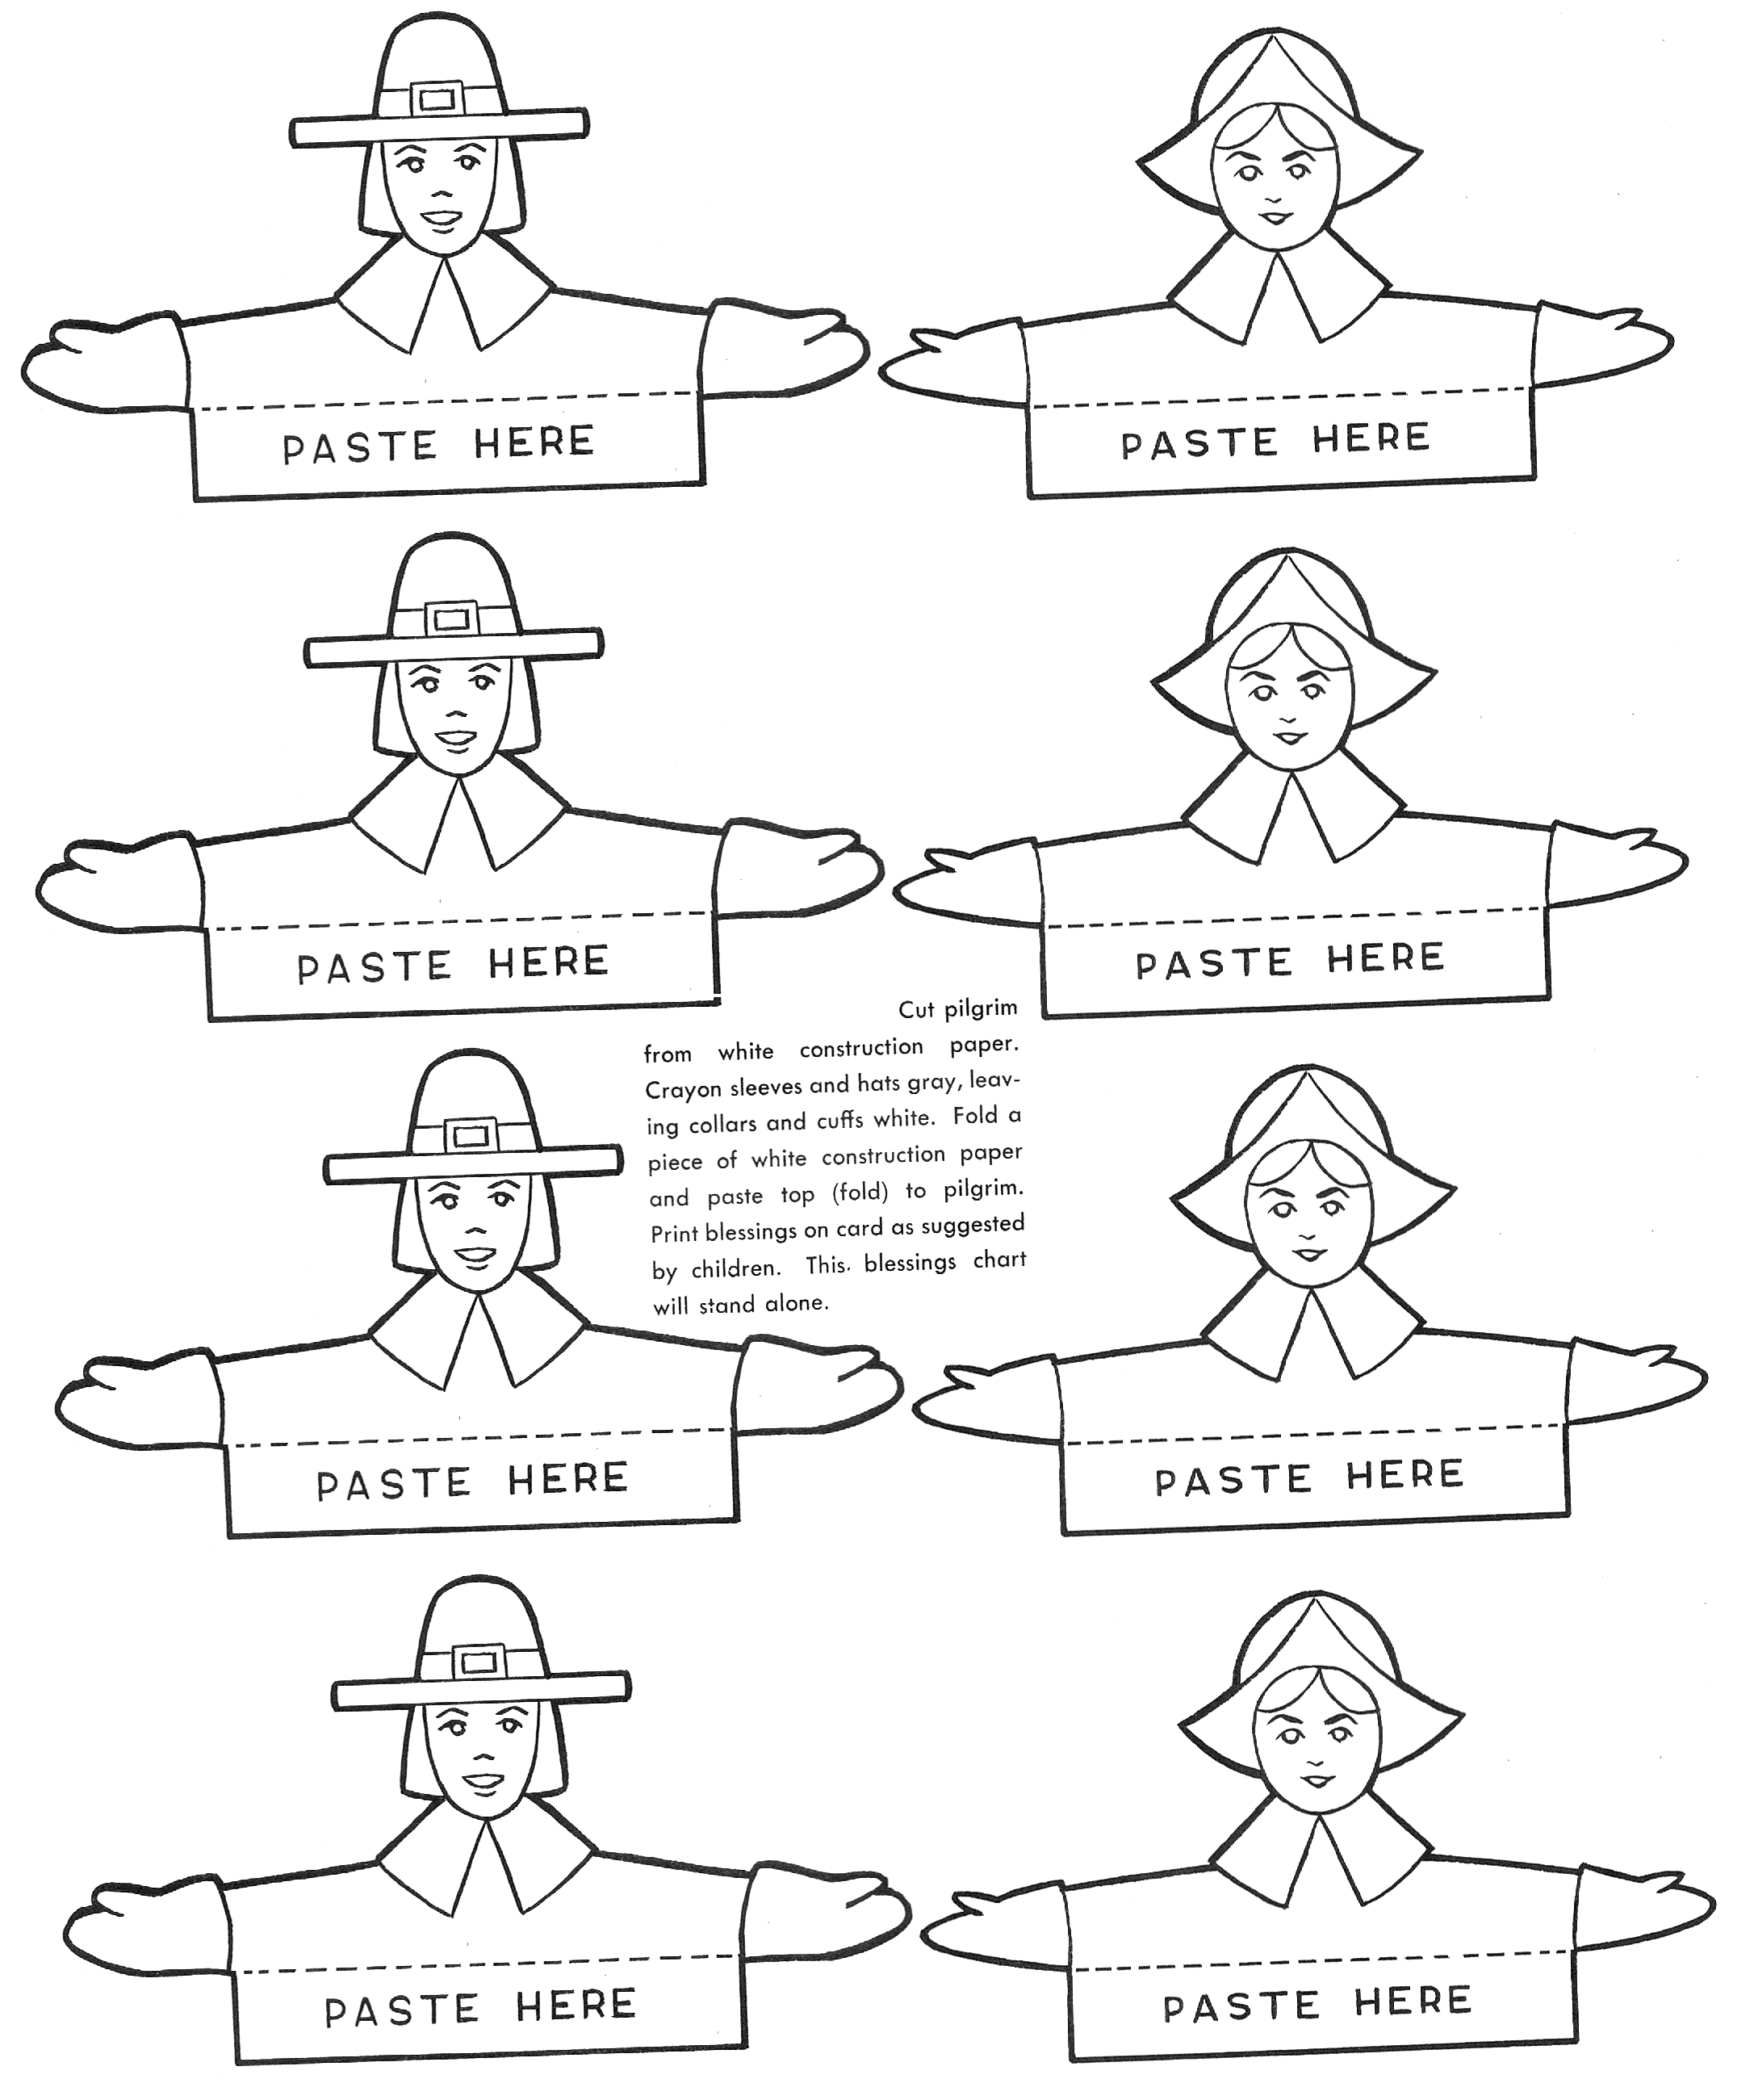 How To Make Thanksgiving Place Cards - Kids Crafts & Activities - Free Printable Thanksgiving Place Cards To Color